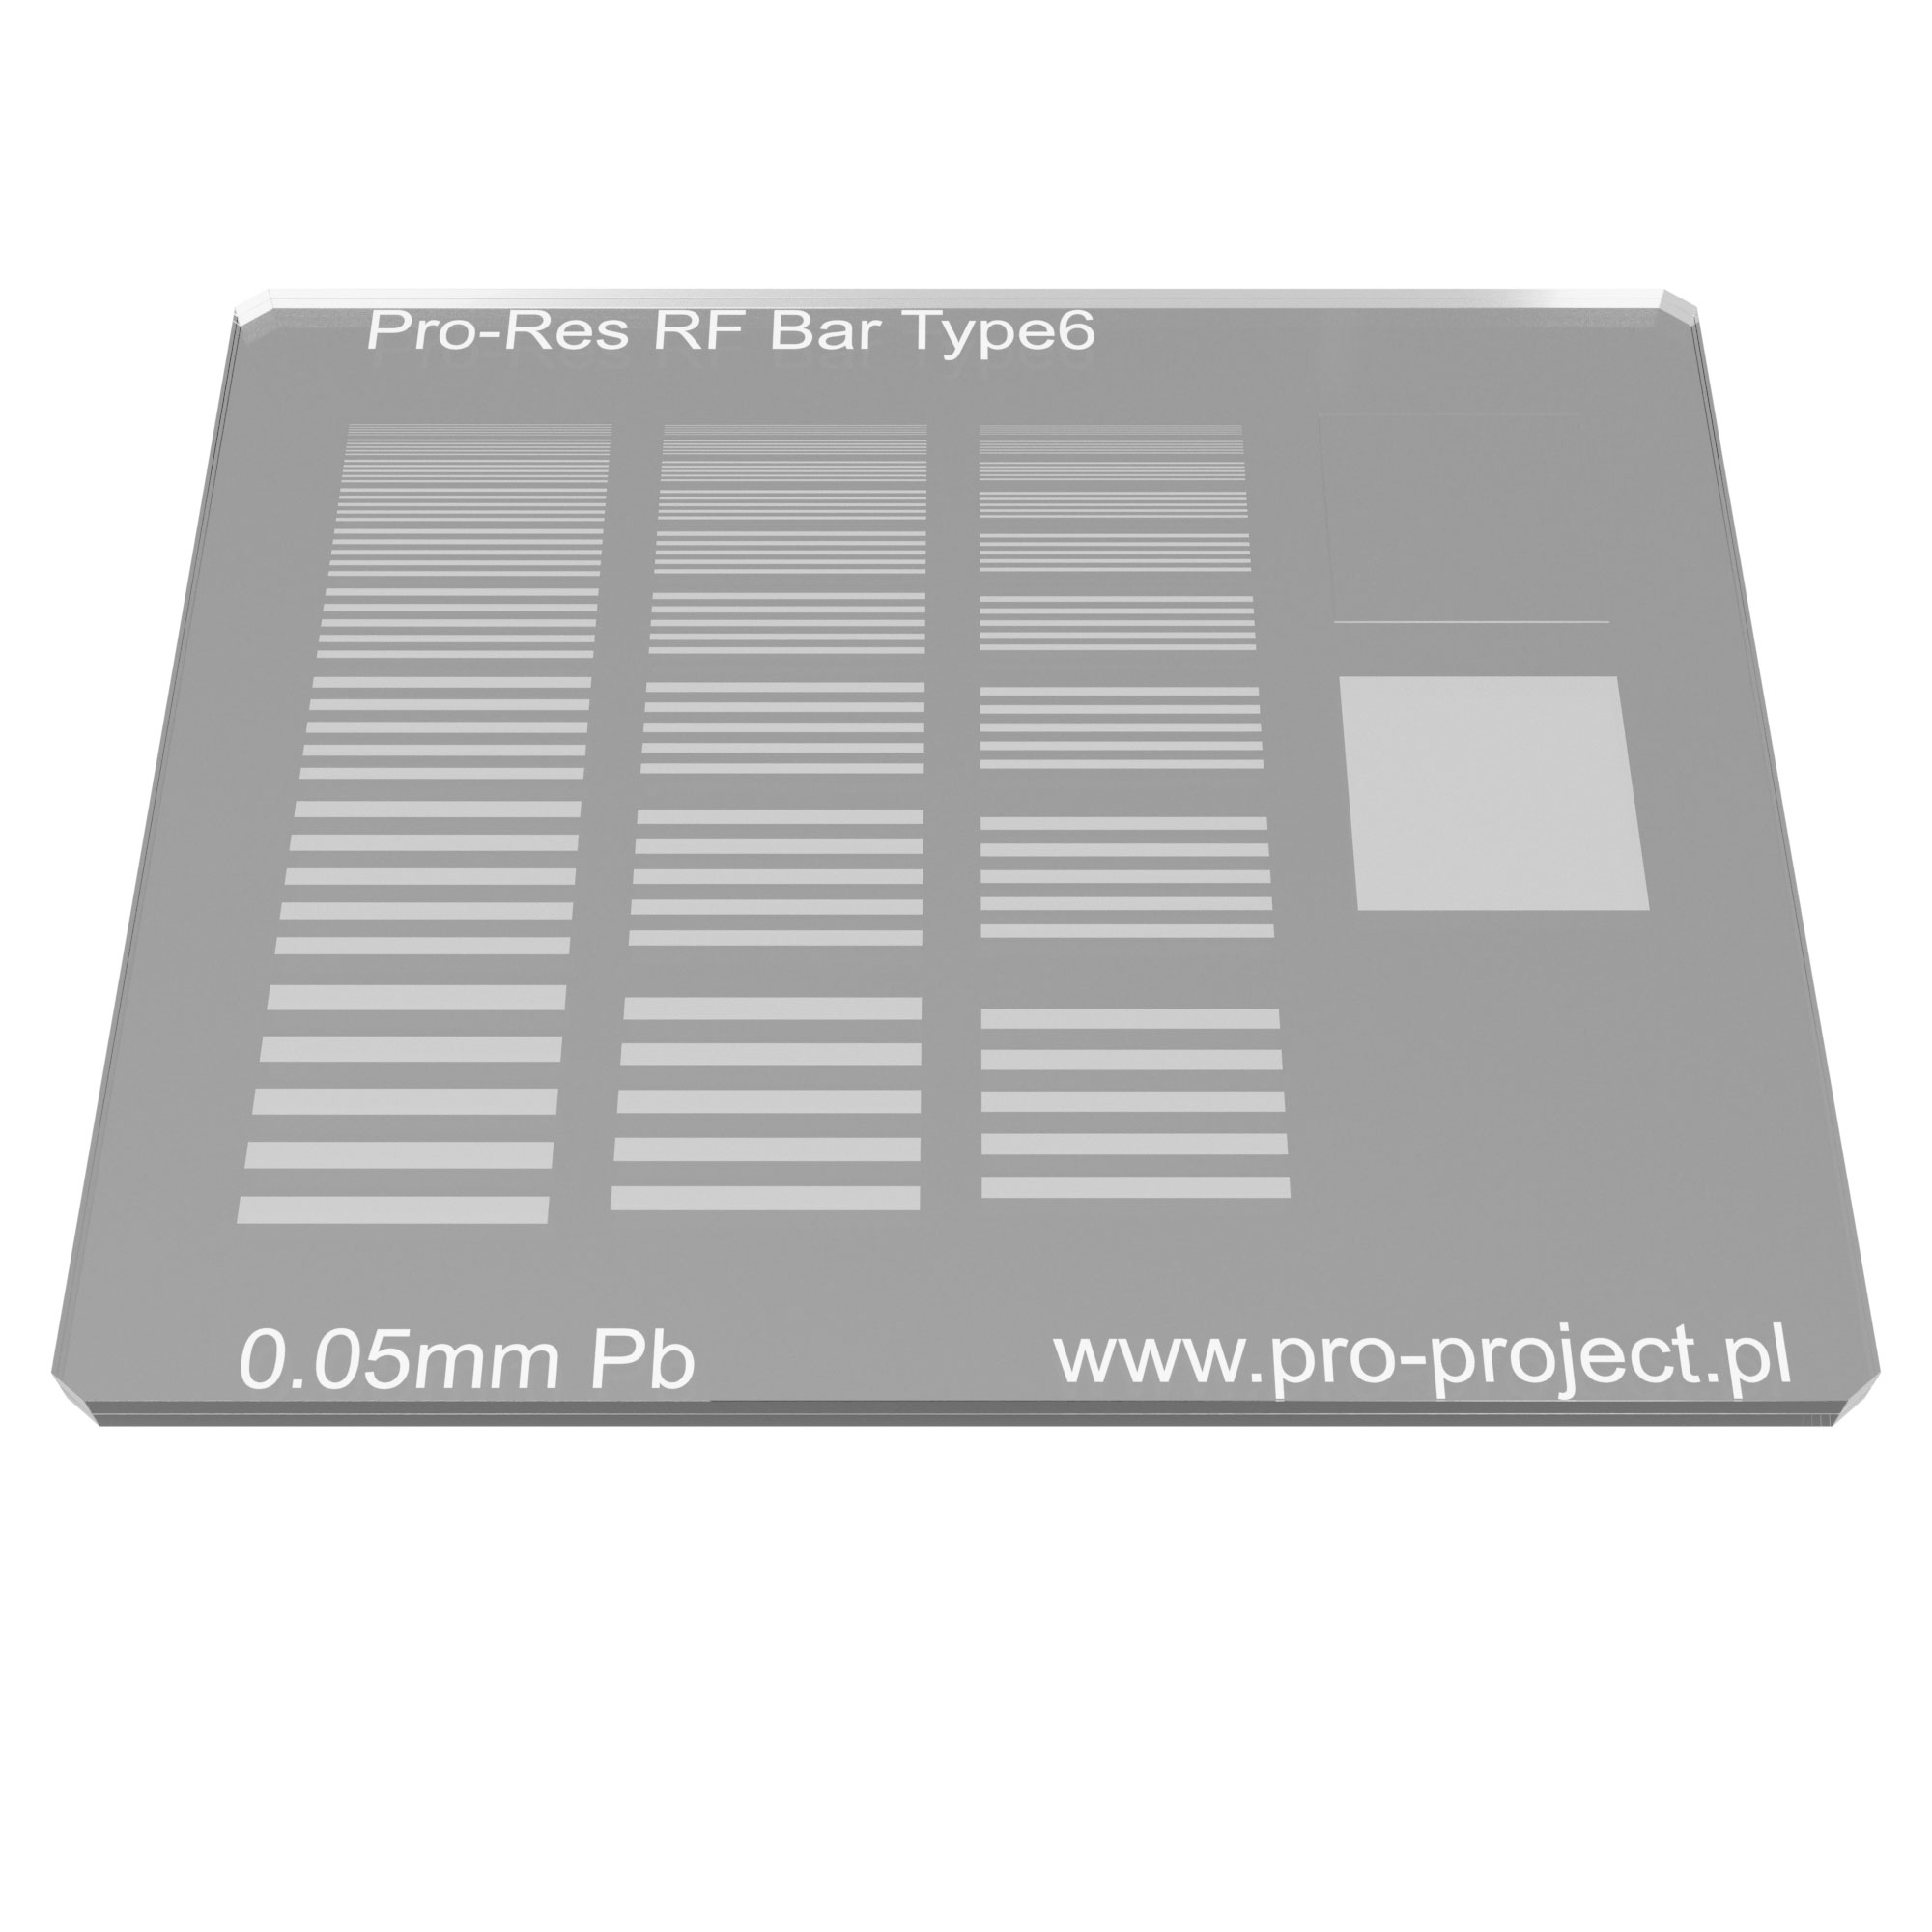 Pro-Res RF BarType 6